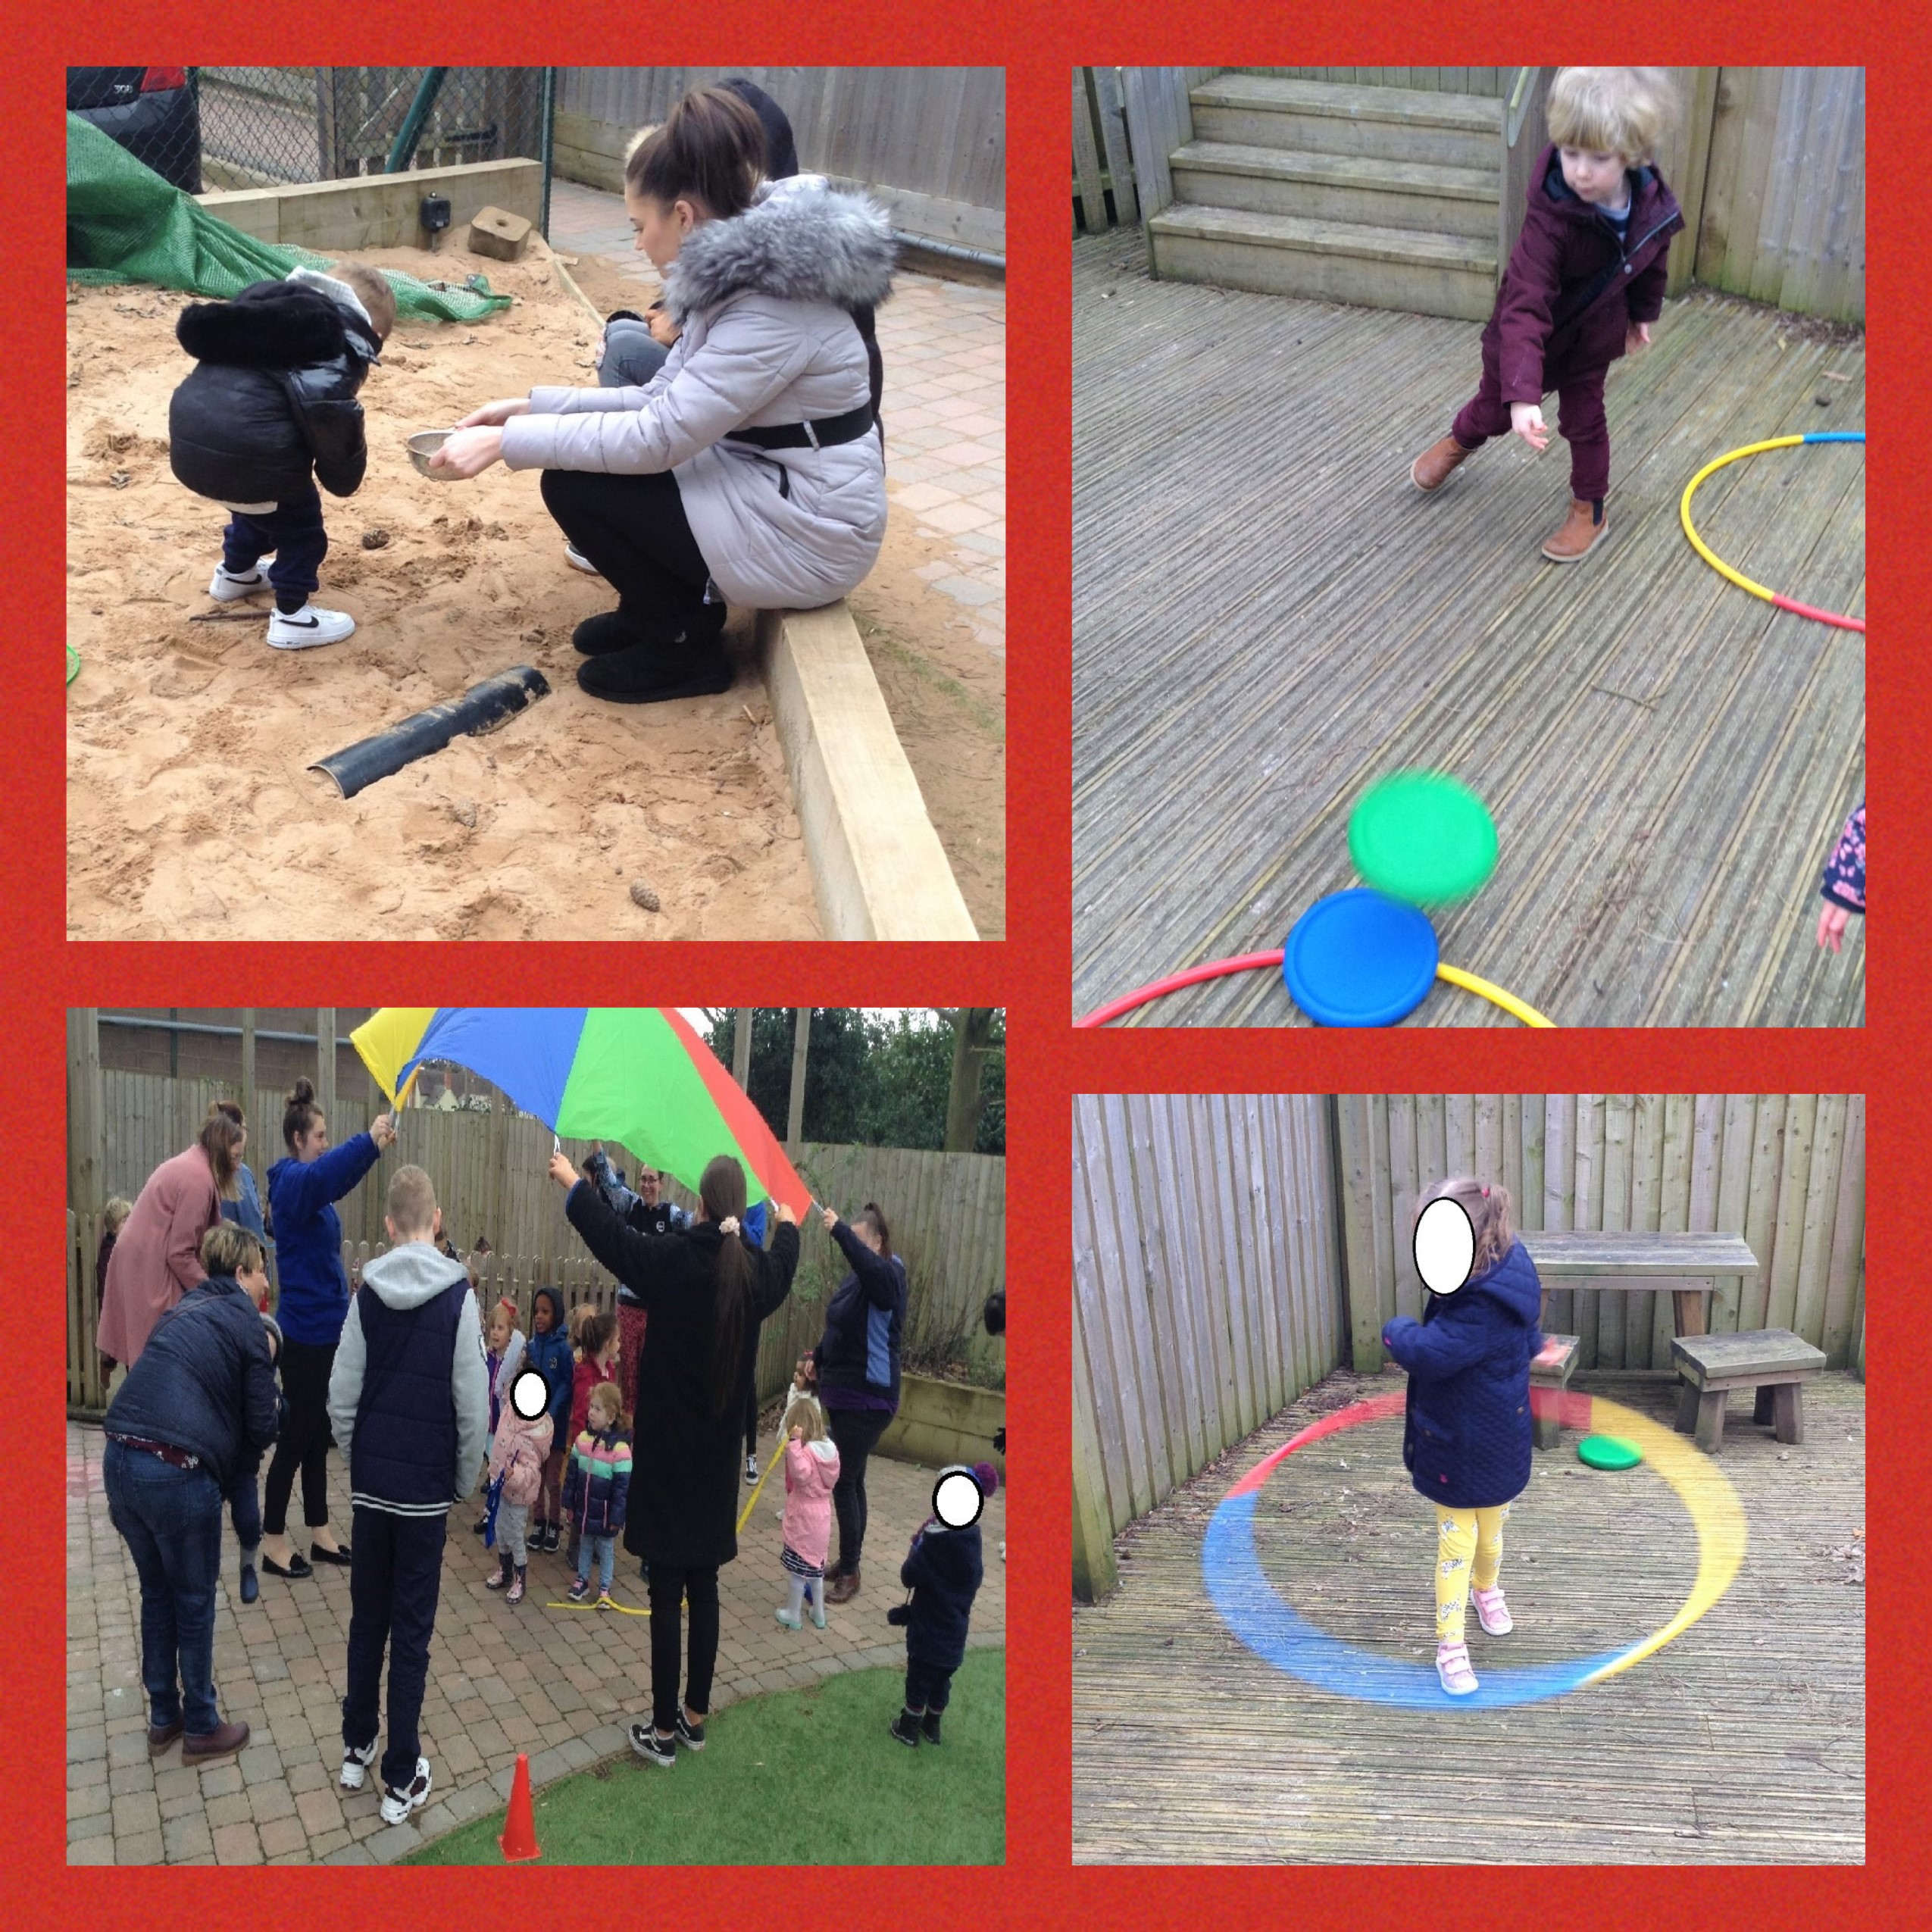 On Friday Bromsgrove held a mini Sports Day raising money for Sport Relief. Children and parents braved the cold to take part in various physical activities & have lots of fun!